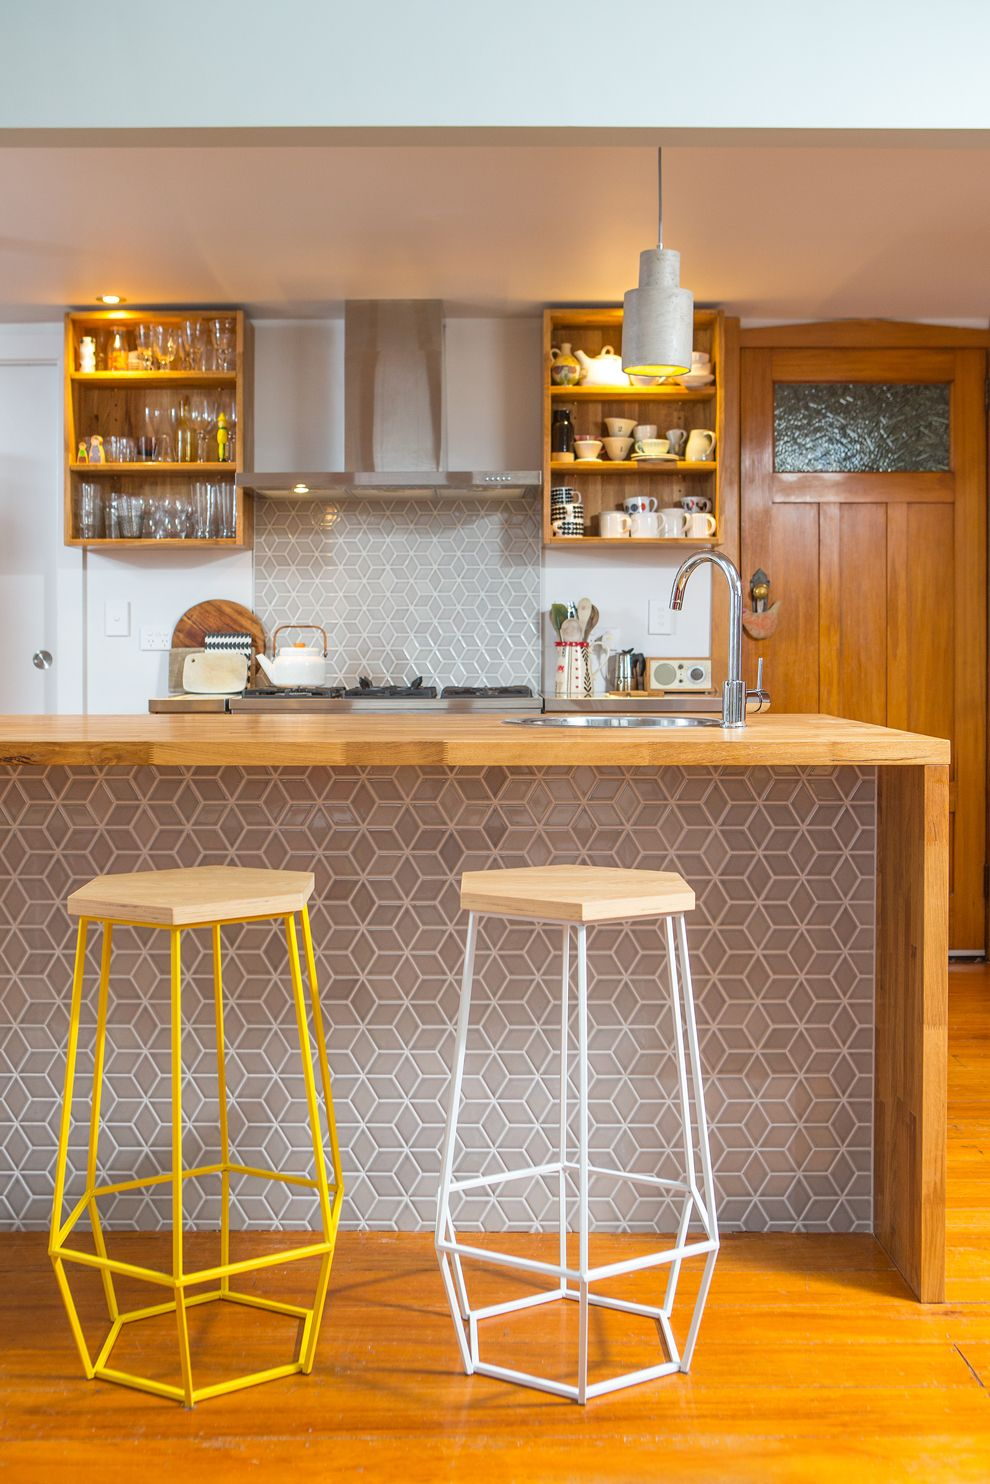 warm kitchen, wooden floor, wooden island top, hexagonal tiles under the island, geometric stool with wooden top, grey backsplash, white wall, wooden floating shelves